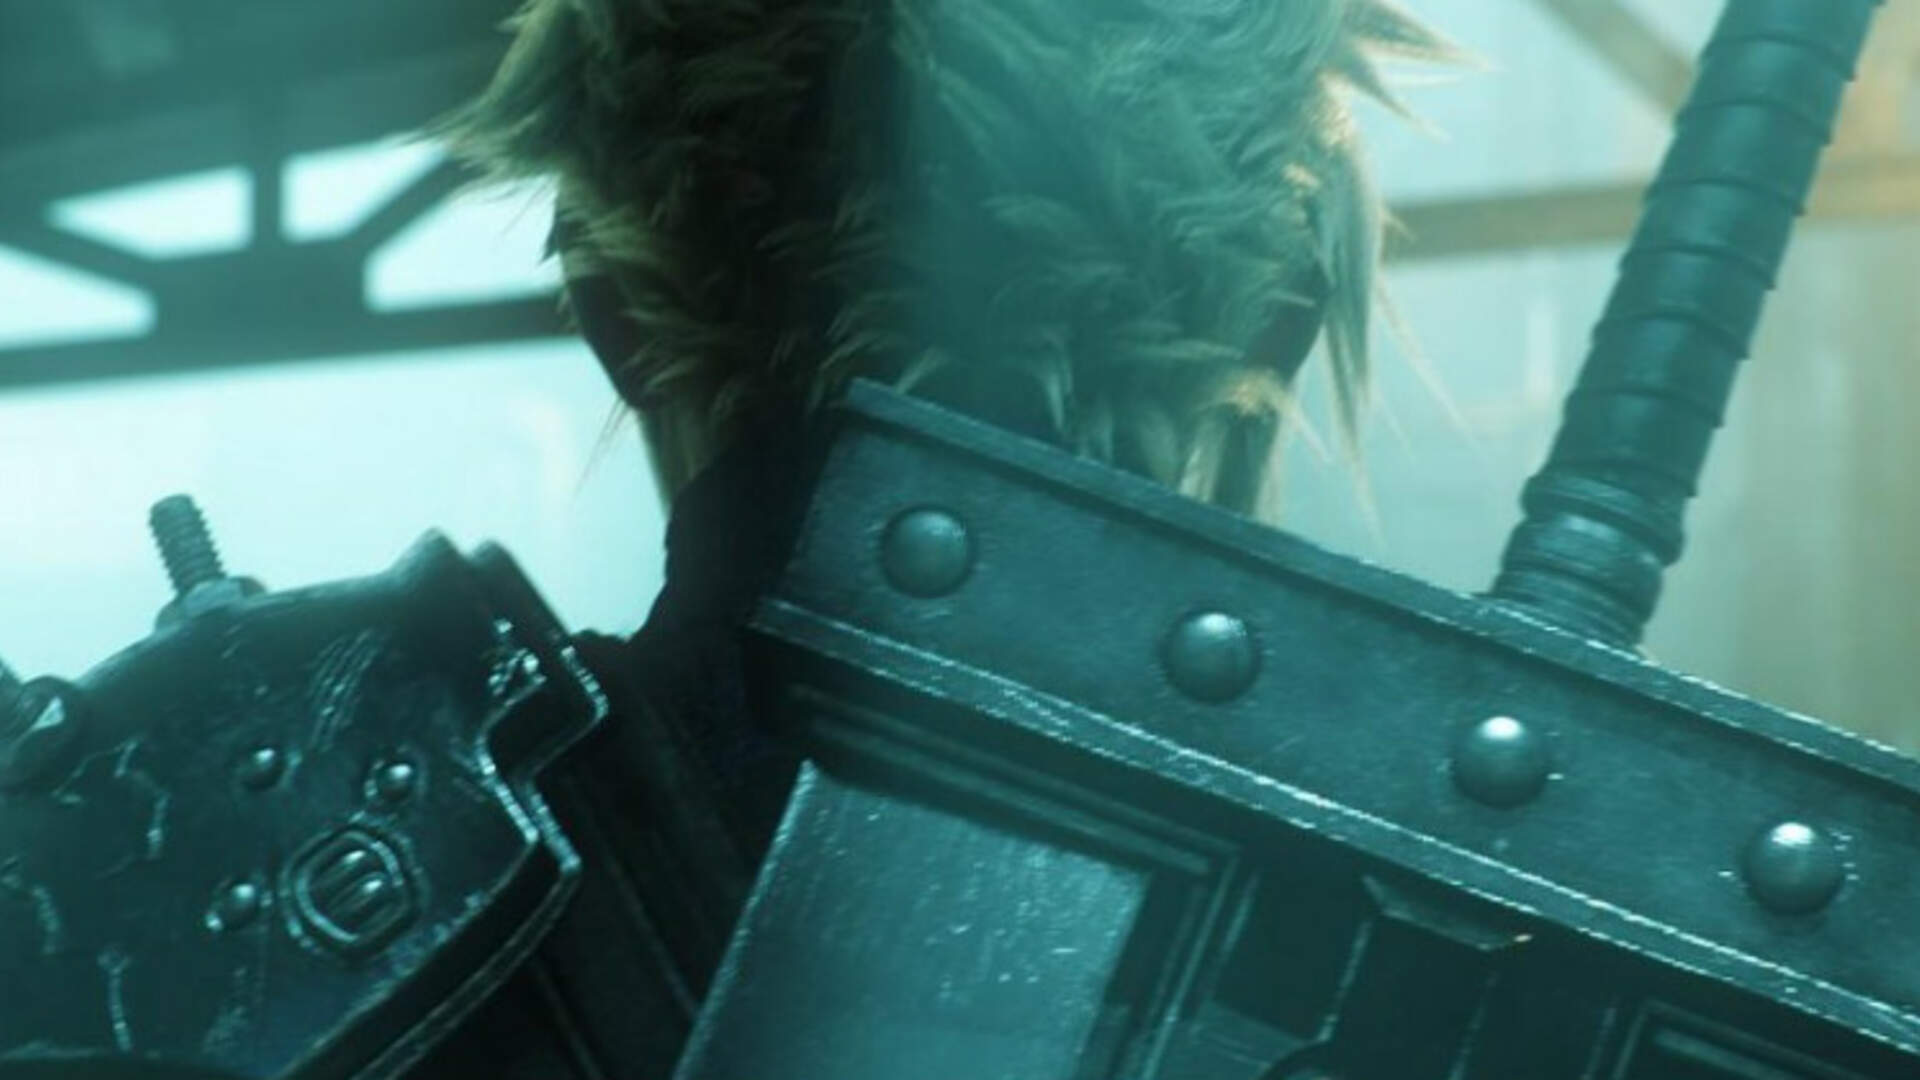 Final Fantasy VII Remake Development Is Apparently Going Just Fine, According To Its Director